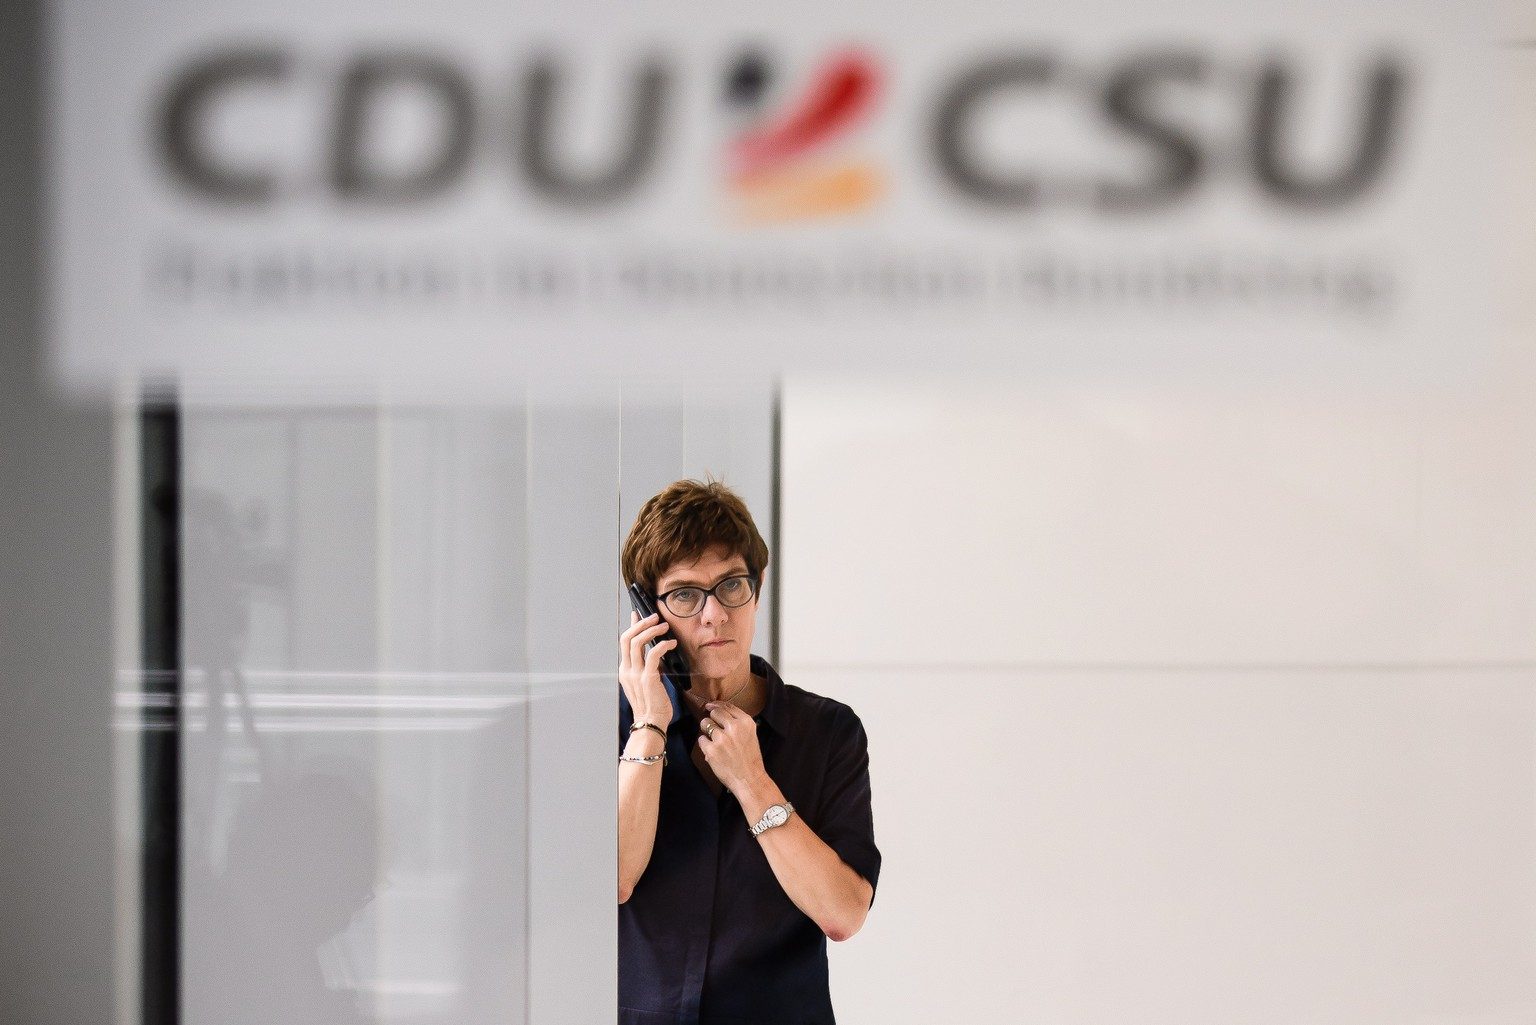 epa07129031 (FILE) - The Secretary General of the Christian Democratic Union (CDU) Annegret Kramp-Karrenbauer talks on the phone prior to a faction meeting of CDU and CSU at the German parliament in Berlin, Germany, 02 July 2018 (reissued 29 October 2018). According to reports from 29 October 2018, Kramp-Karrenbauer said she would run as candidate for CDU chairwoman to succeed Chancellor Merkel in that office.  EPA/CLEMENS BILAN